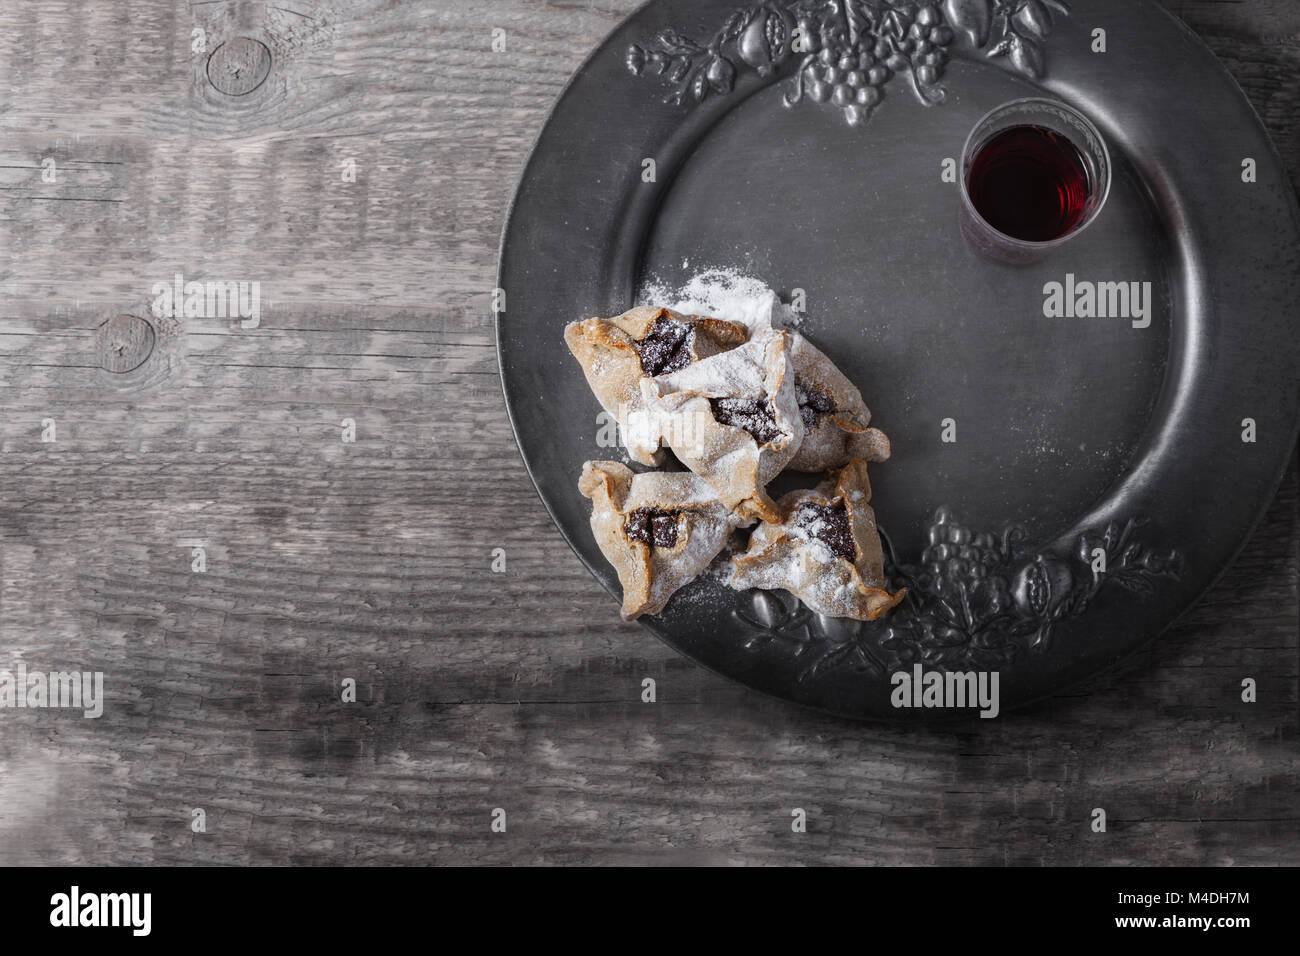 Jewish Pastry Hamantaschen on a table for Purim Holiday. - Stock Image